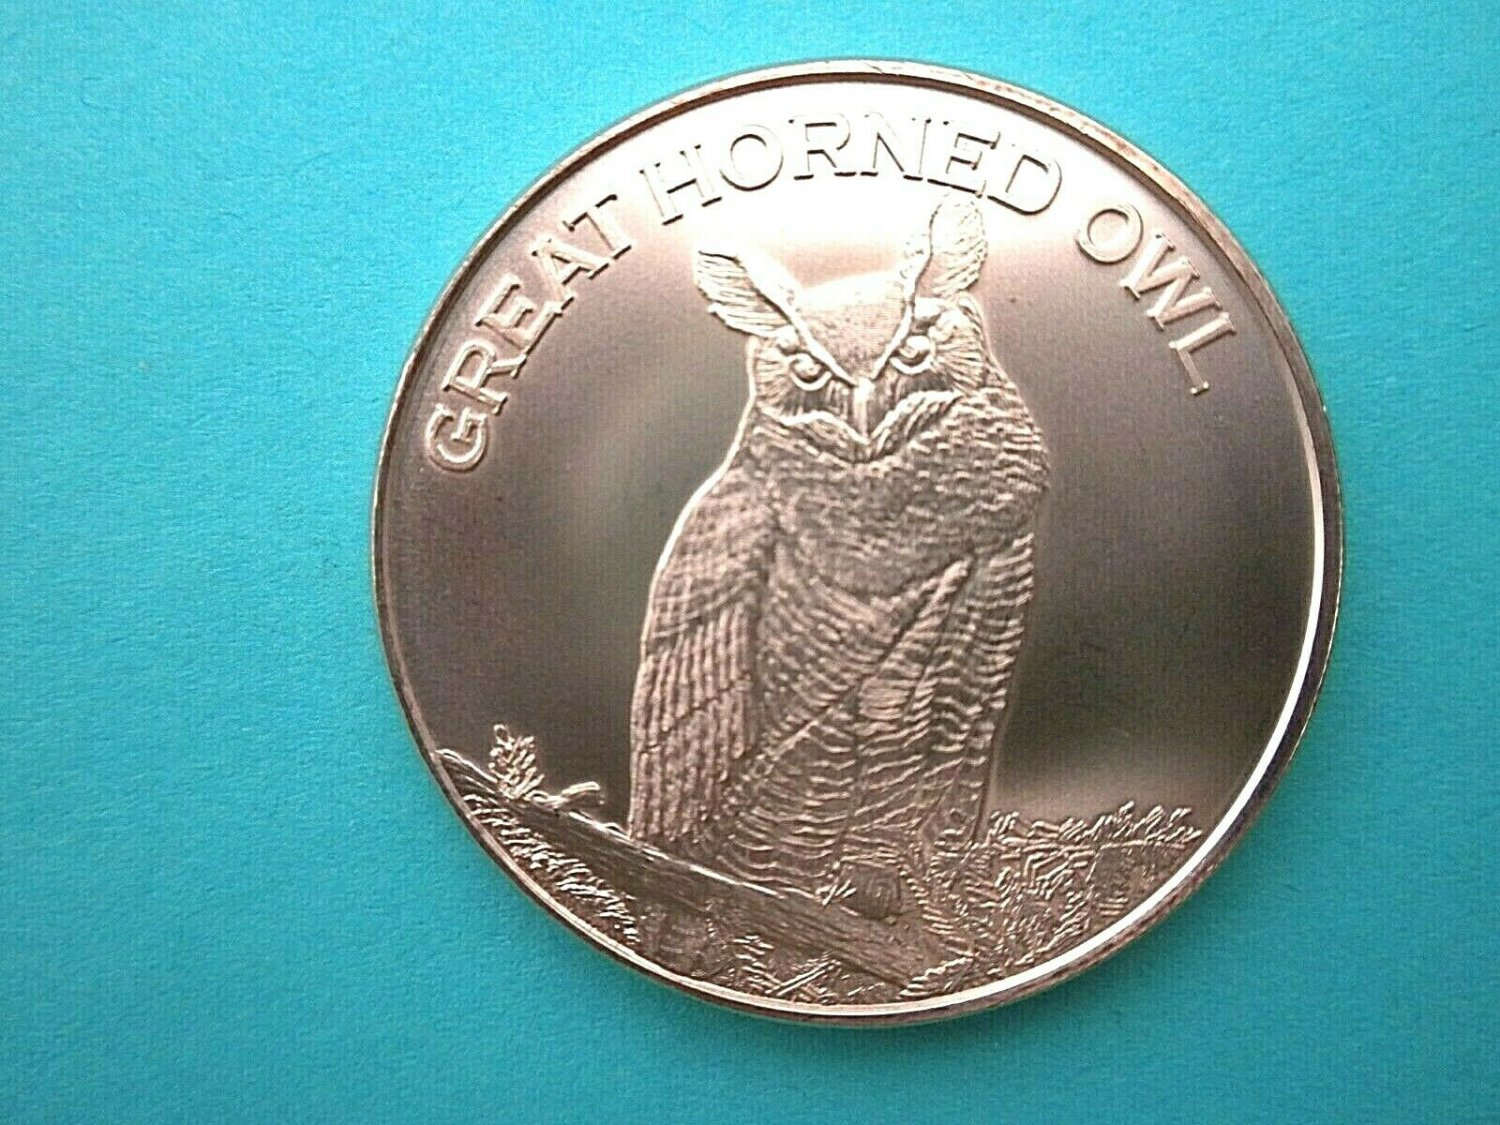 New Great Horned Owl 1 Oz Copper Round Coin